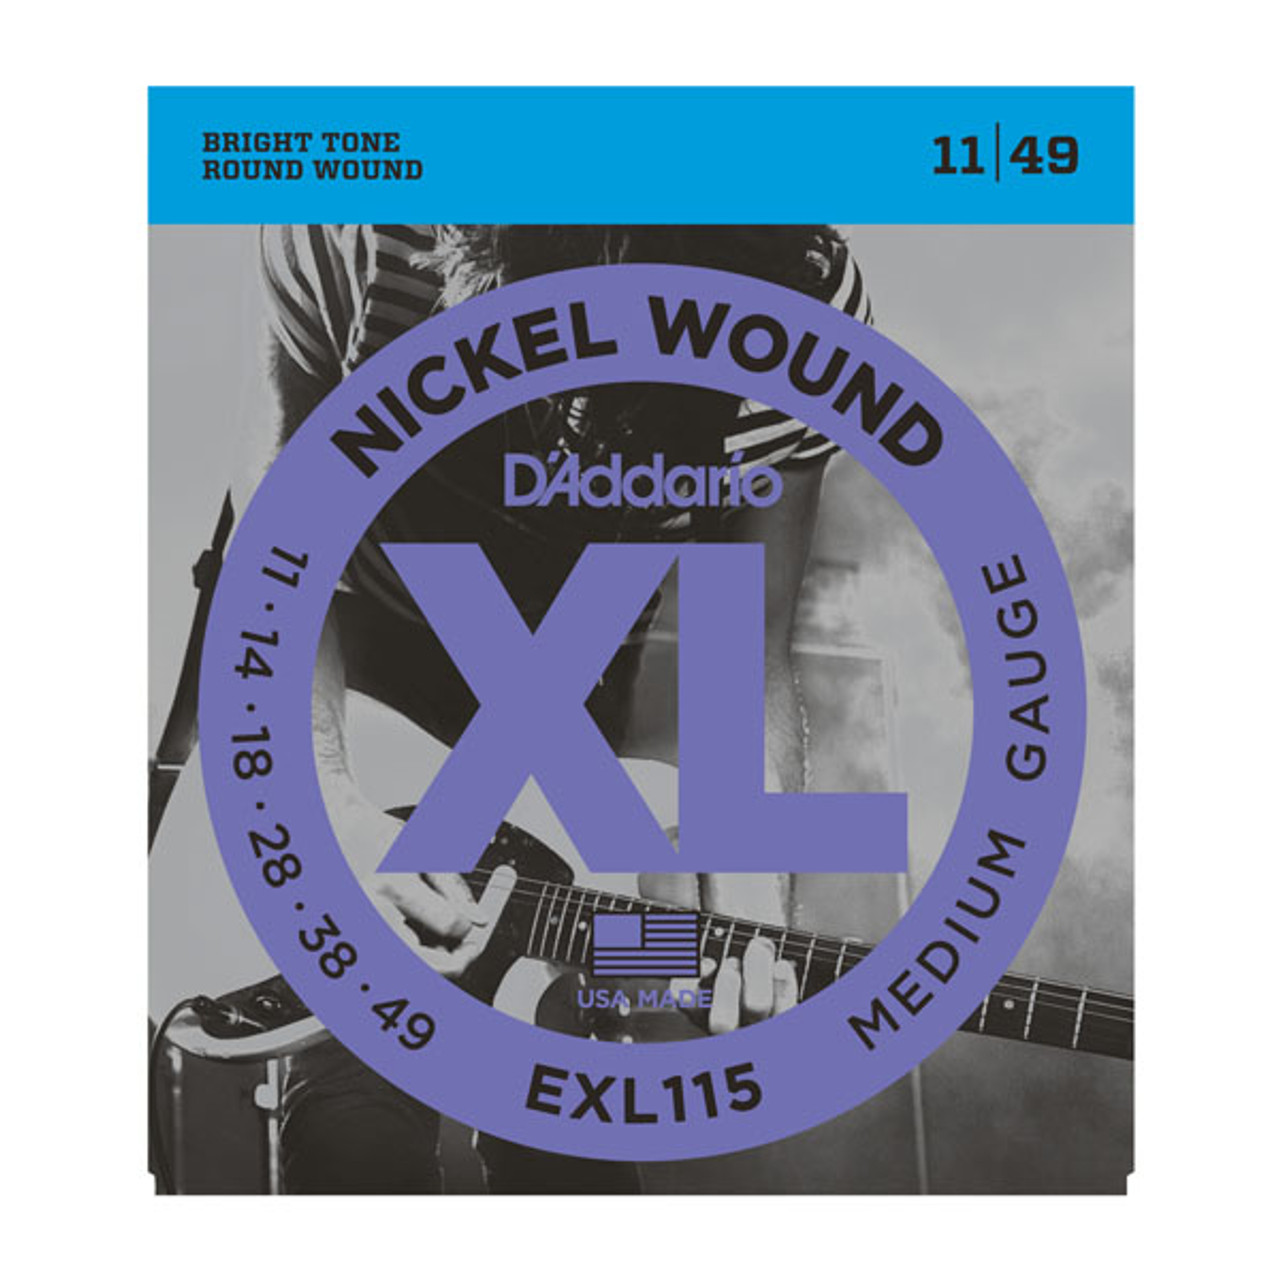 D'Addario EXL115 Medium Electric Guitar Strings 11-49